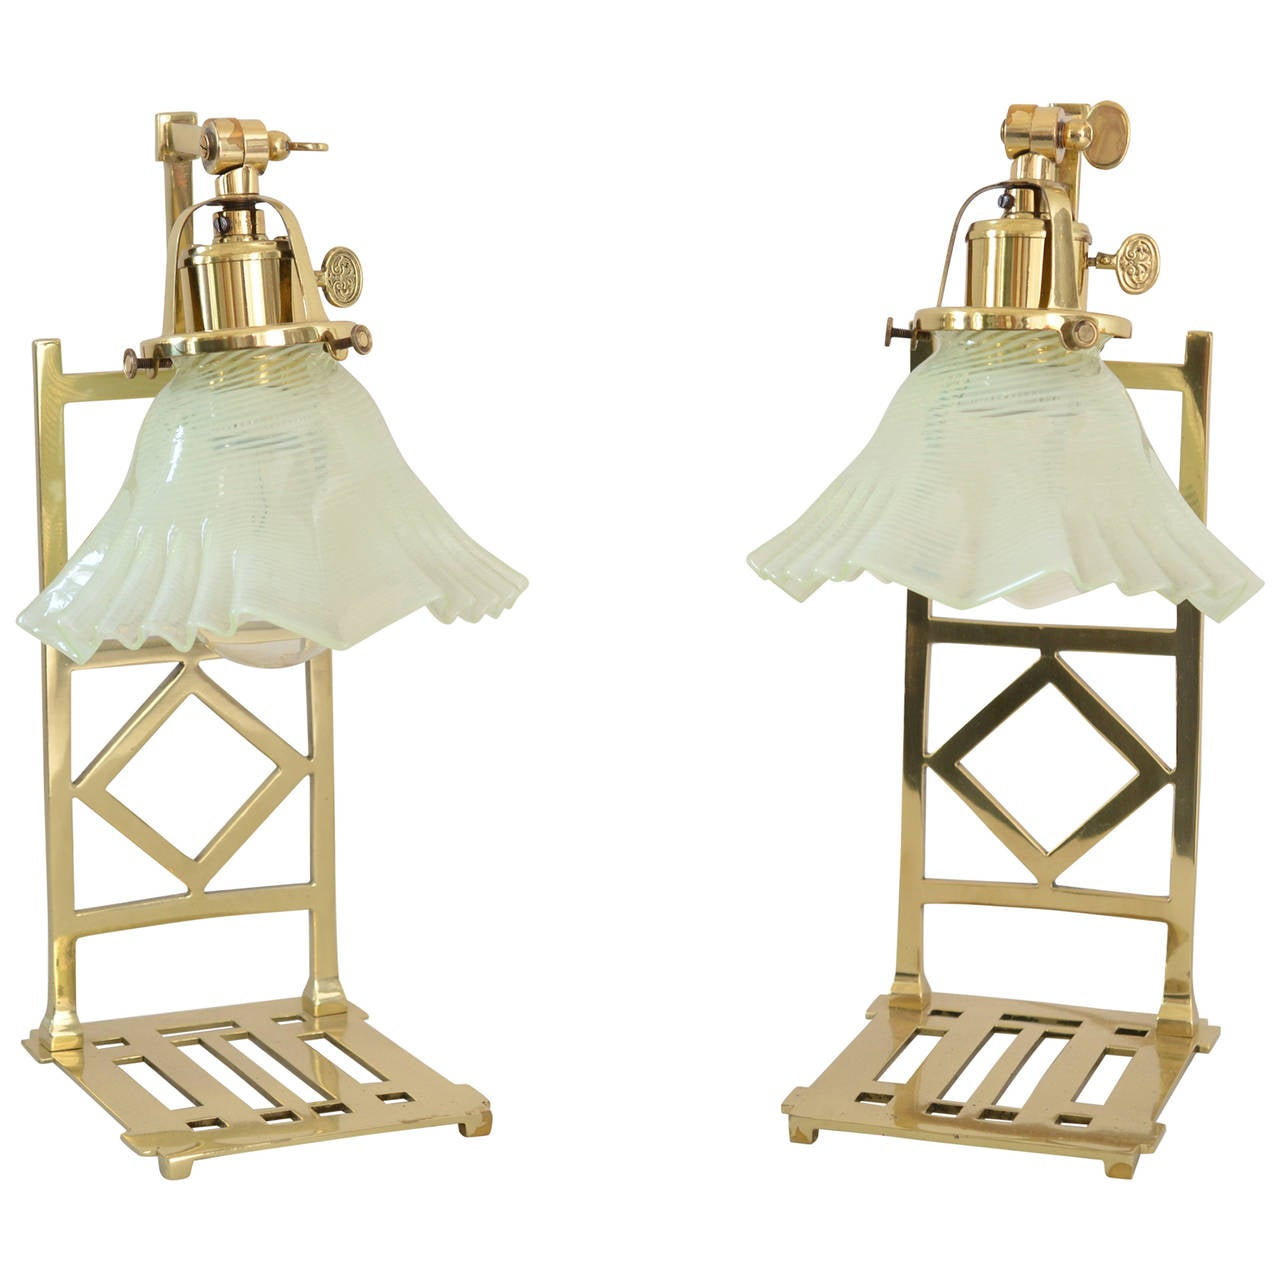 Two Jugendstil Table Lamps with Opaline Glass Shades